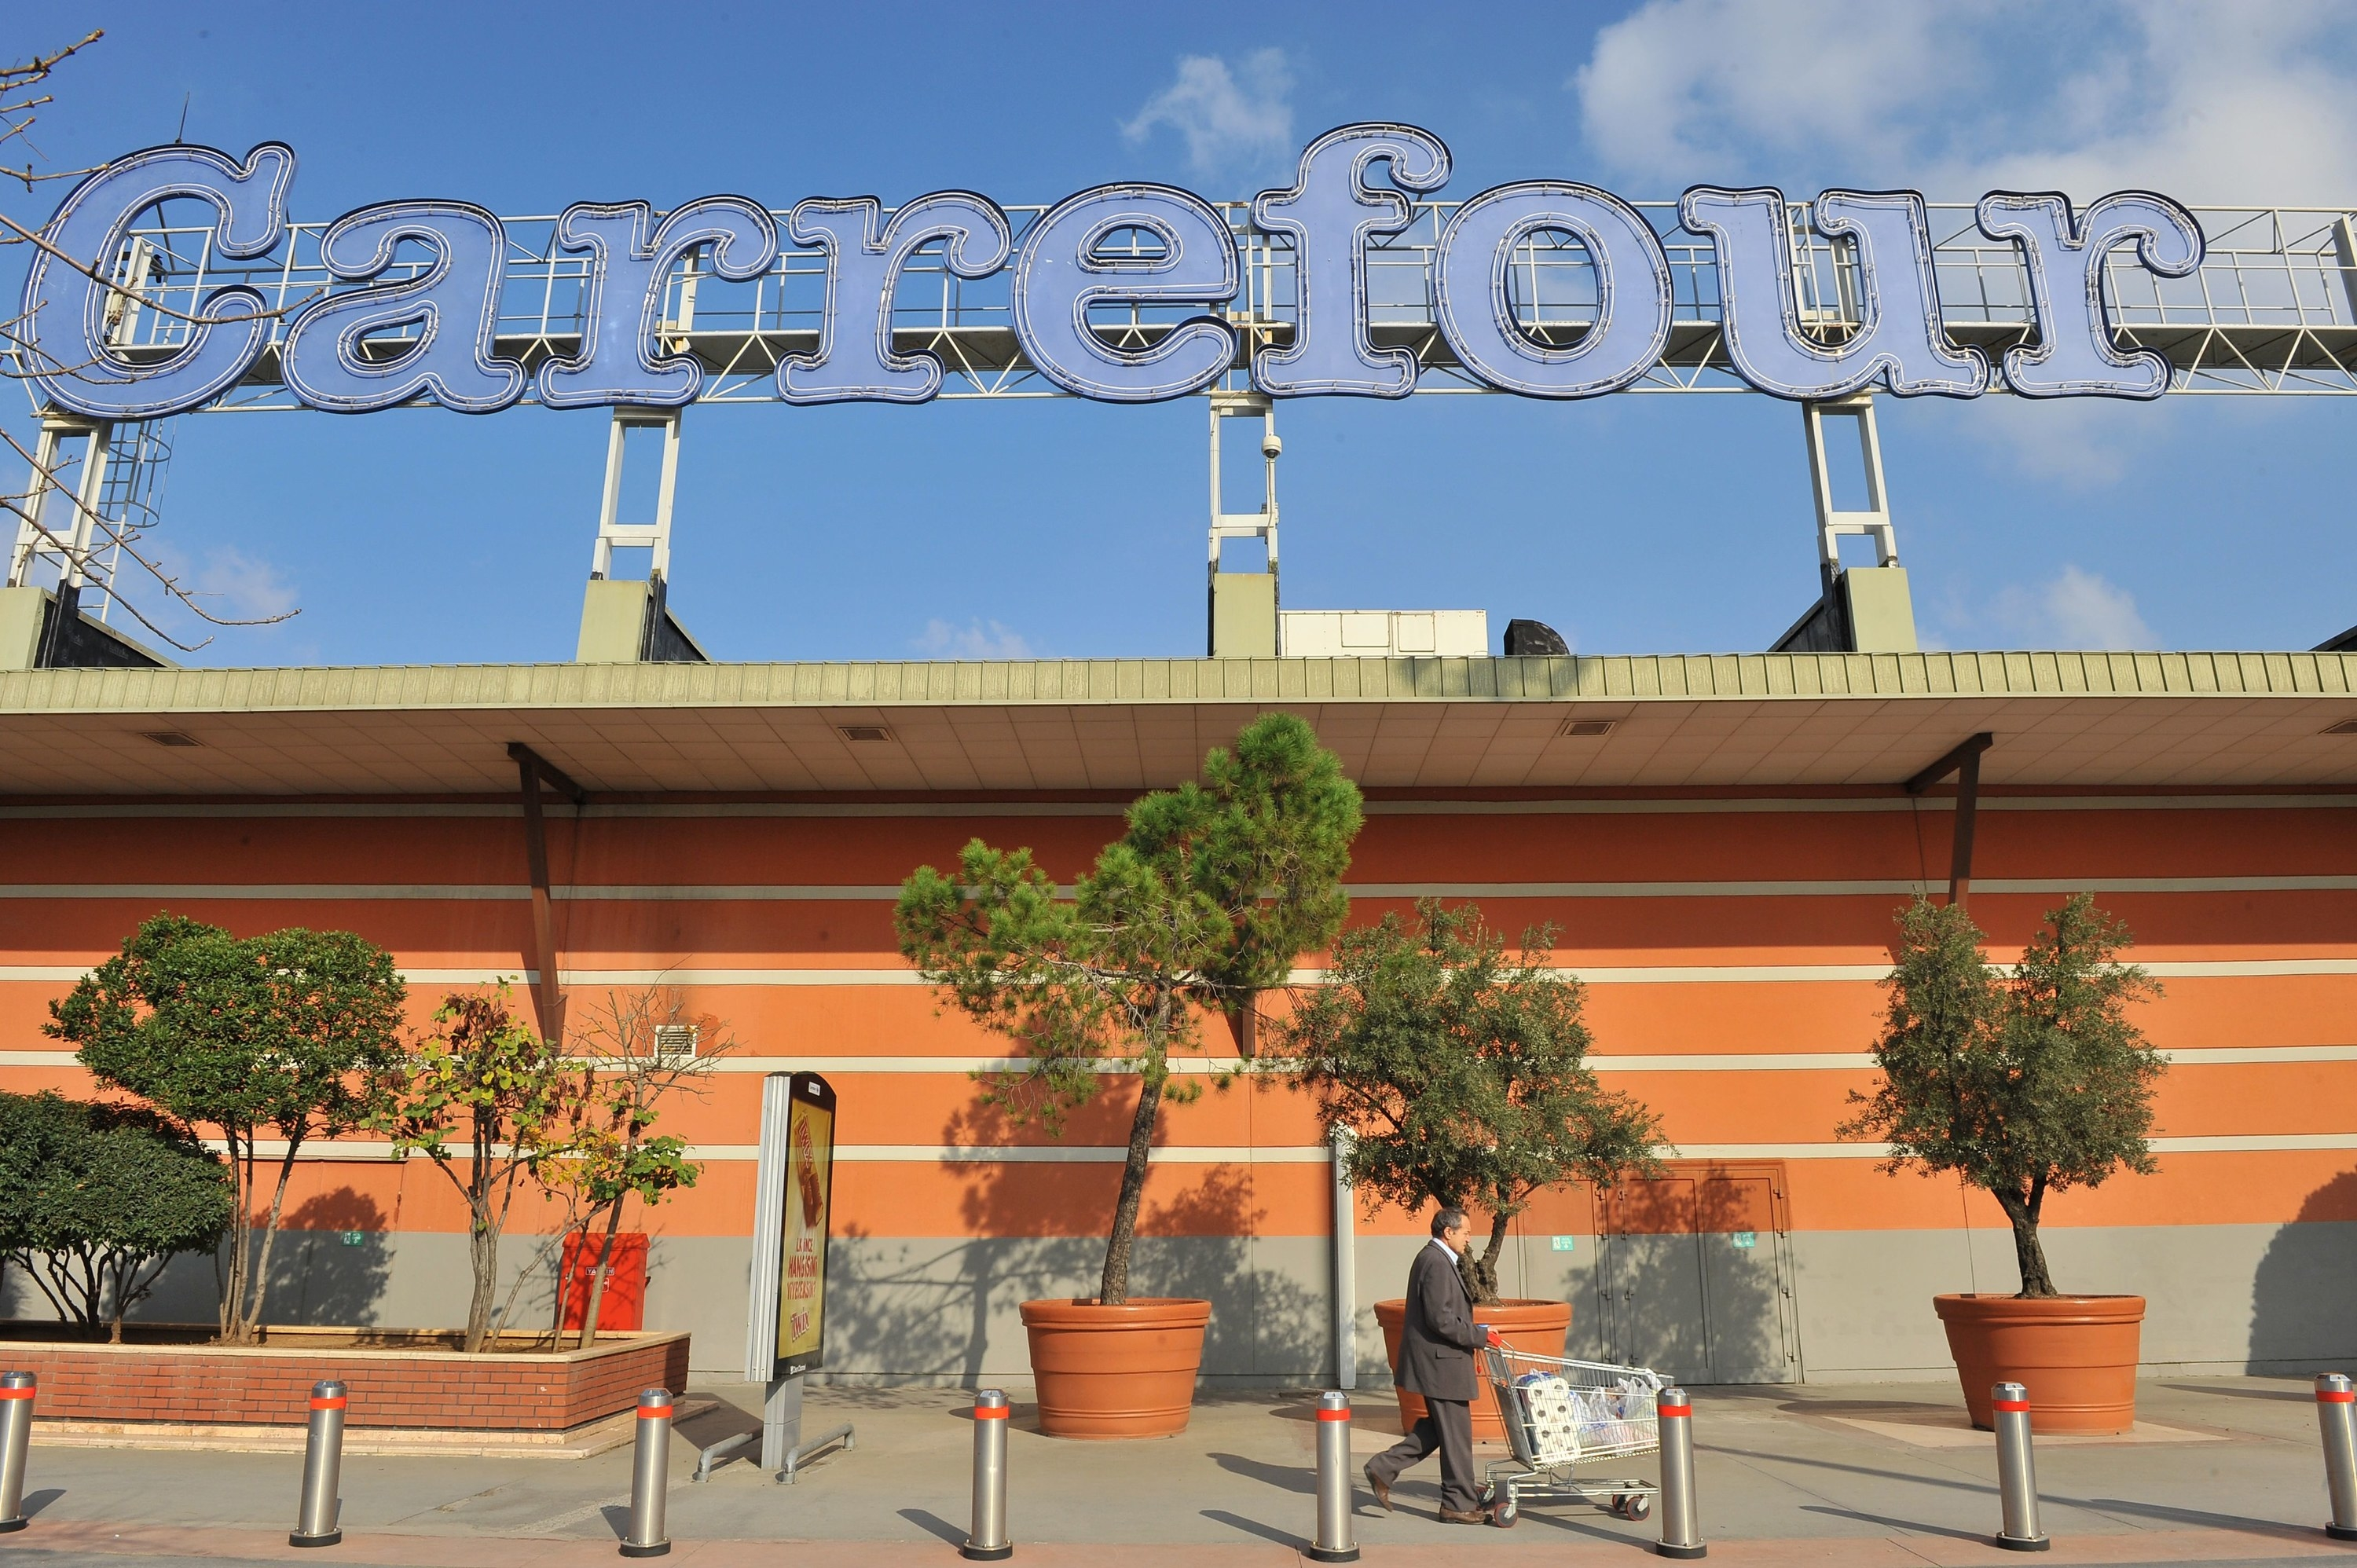 The exterior of a Carrefour supermarket